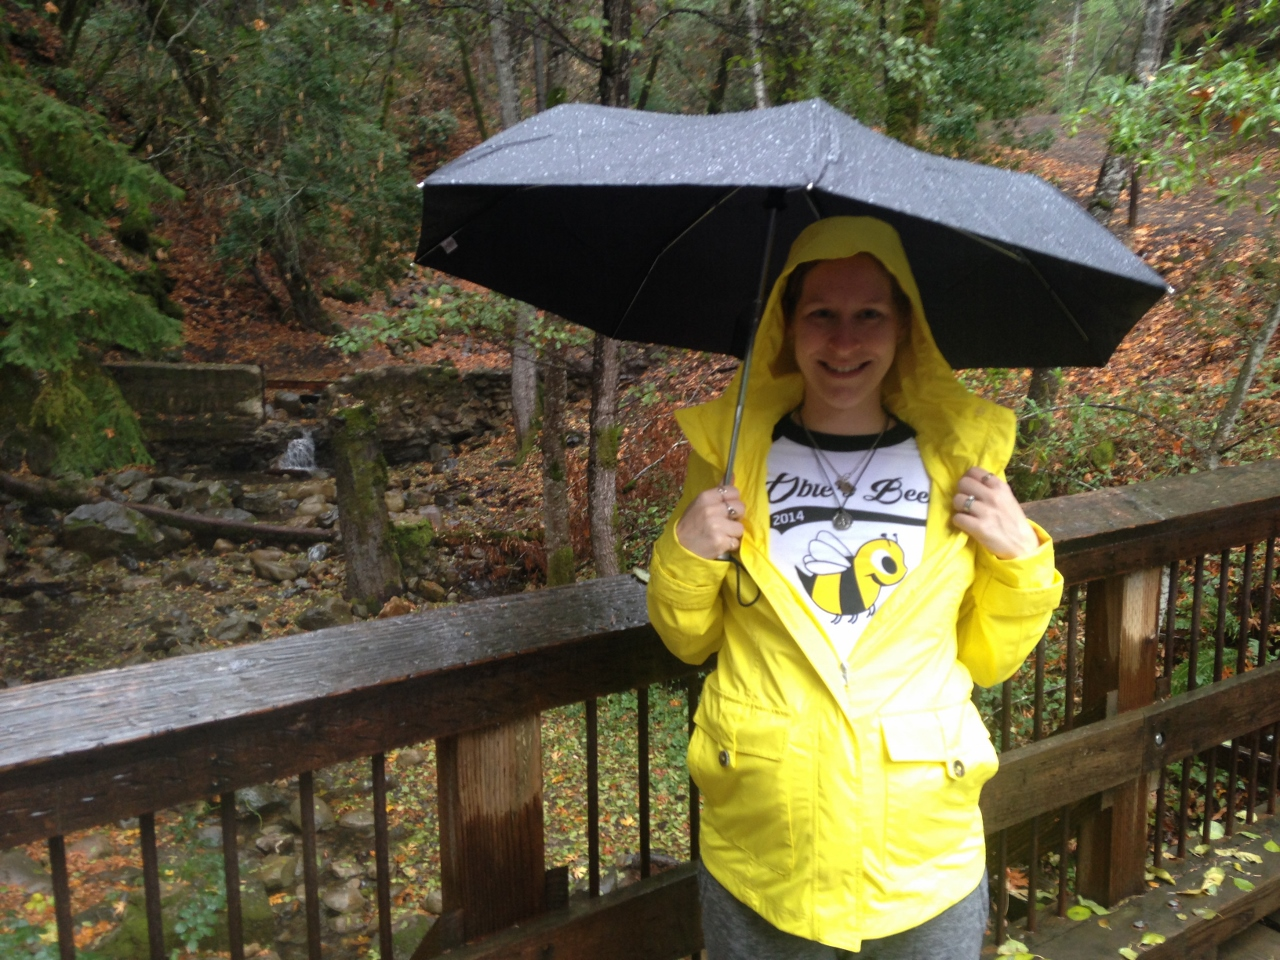 Sporting my Obie's Bees shirt and my yellow raincoat on Obie's Bee Day, Nov 24.